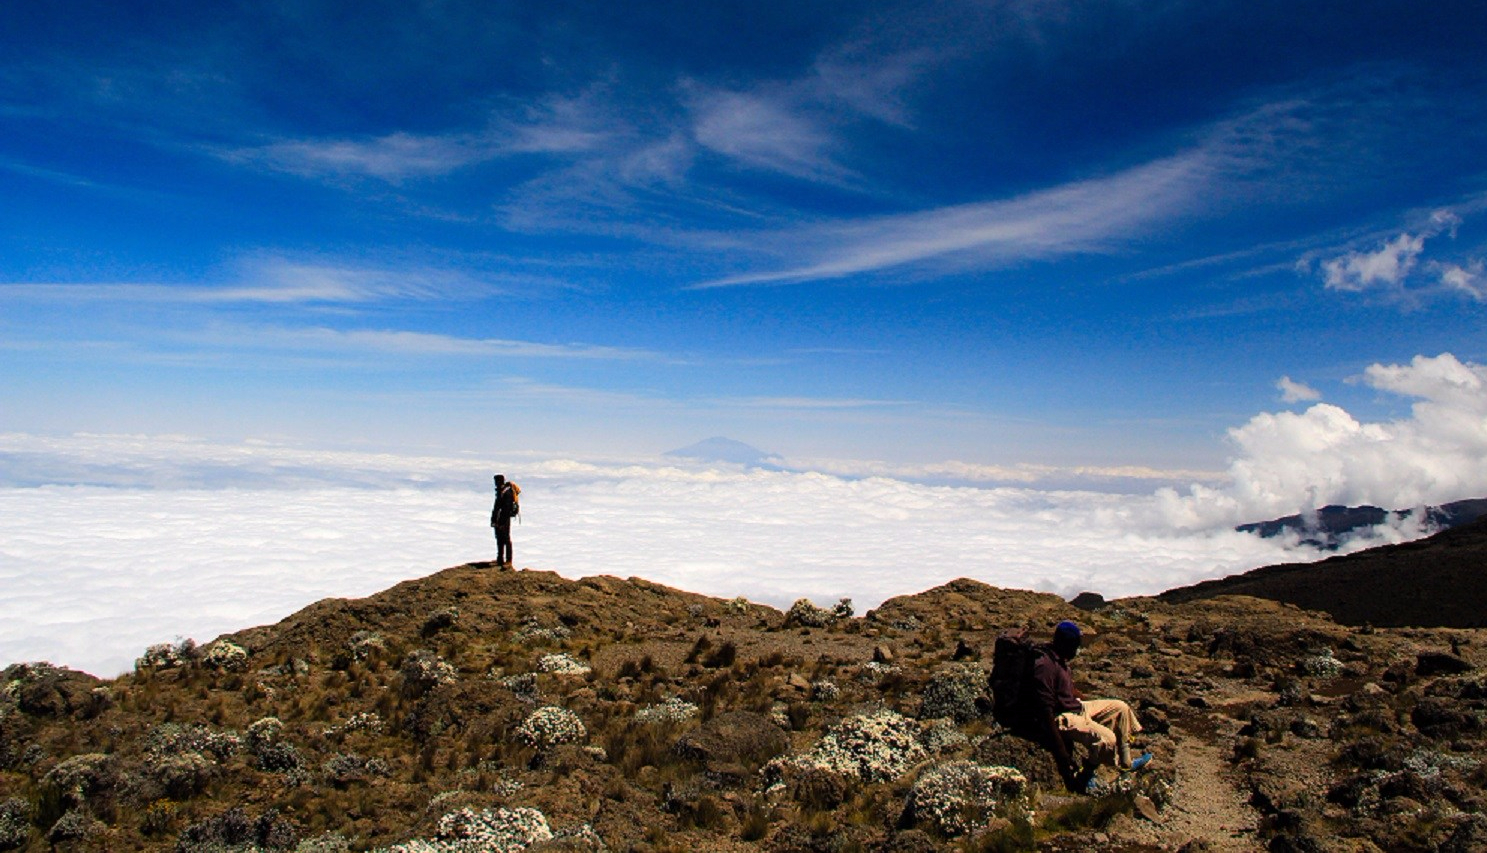 Journey above the Clouds- Kilimanjaro, Lemosho Day 5